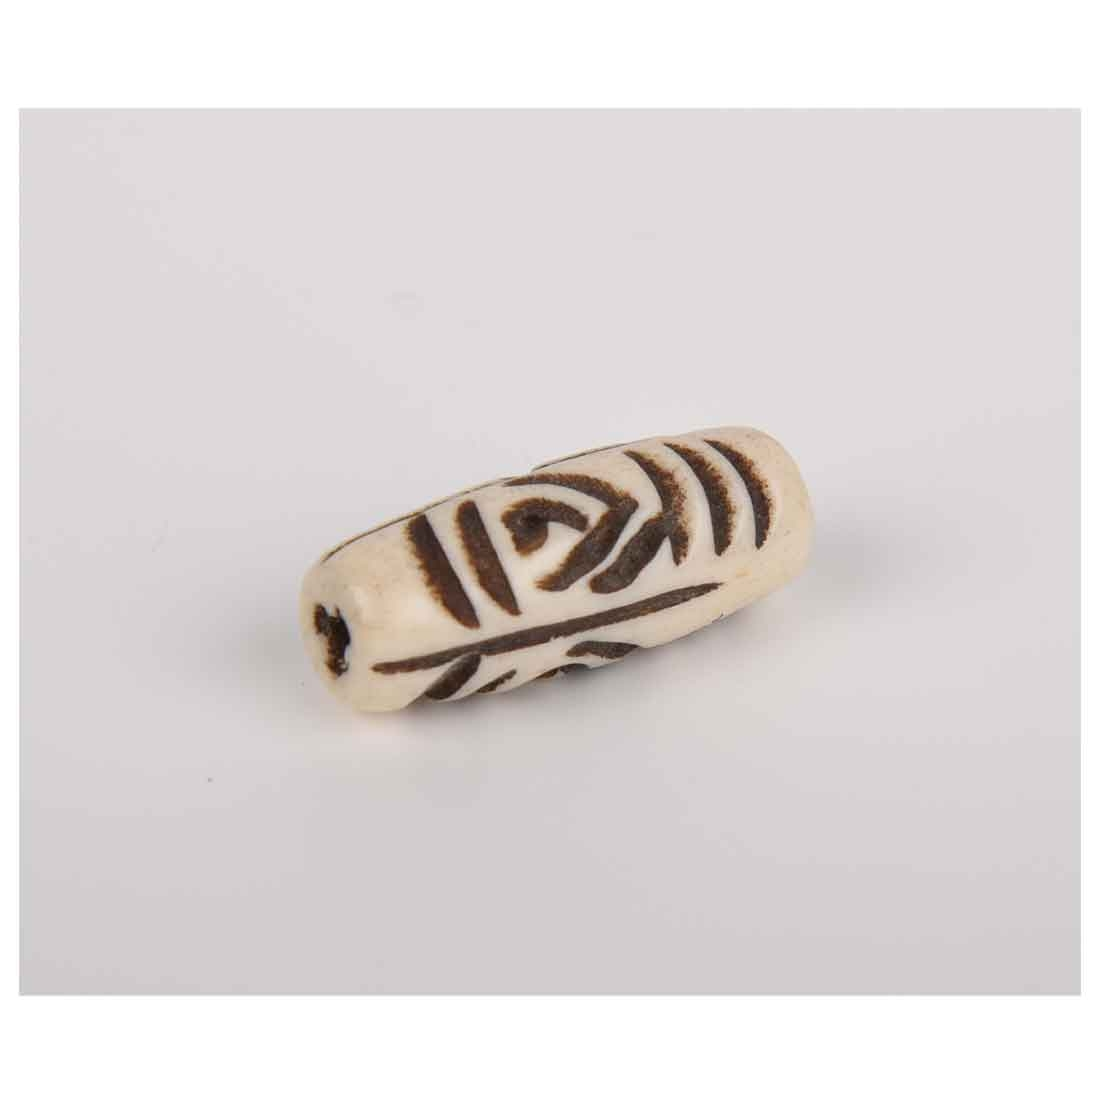 Beads India 1700008 Handcrafted Bone Beads/Discounts Above 500 pcs